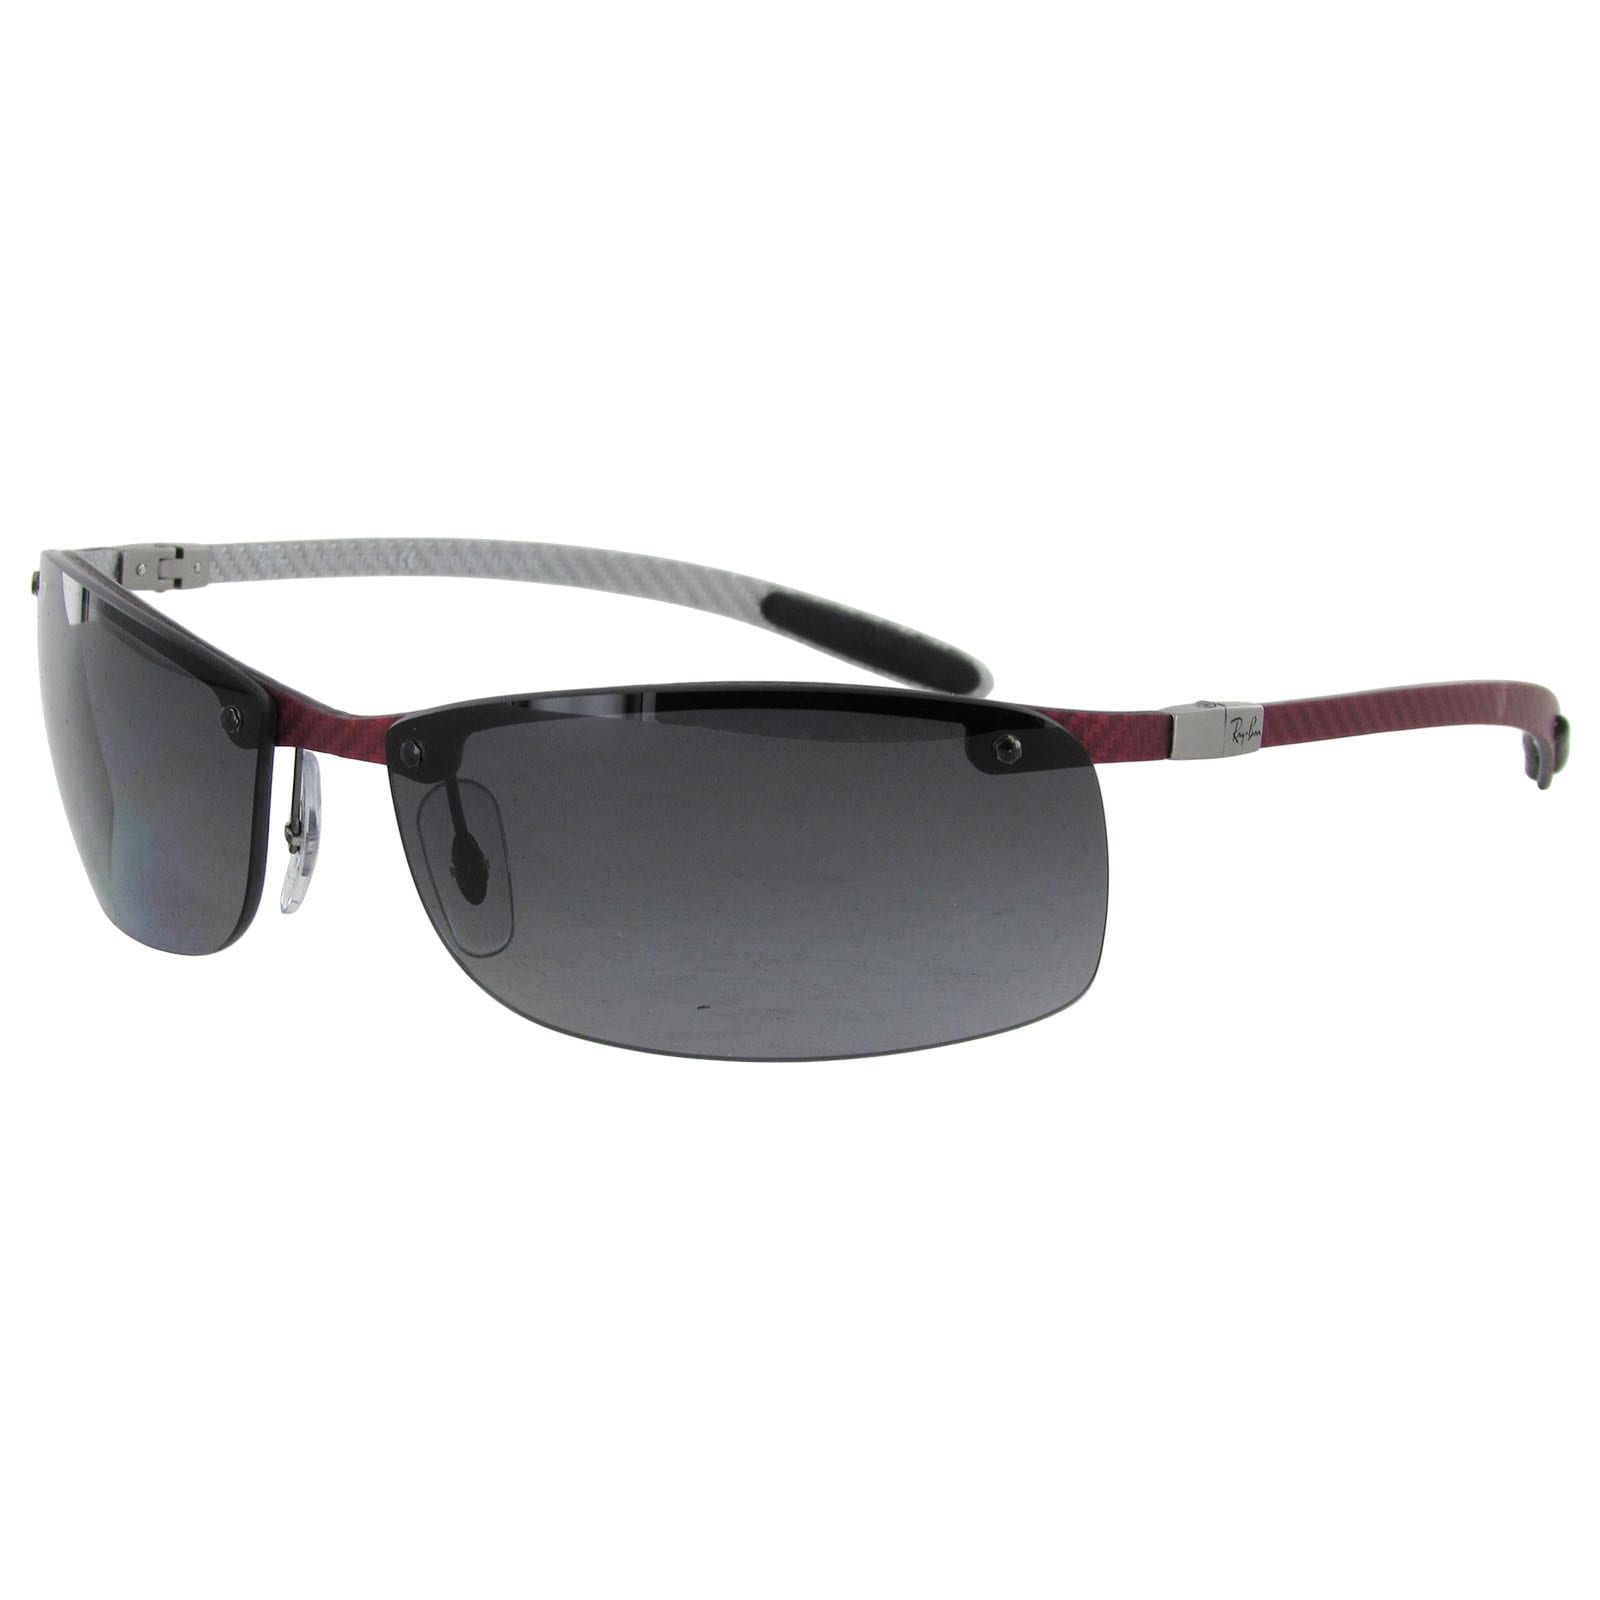 8c4918be23 Men s Sunglasses